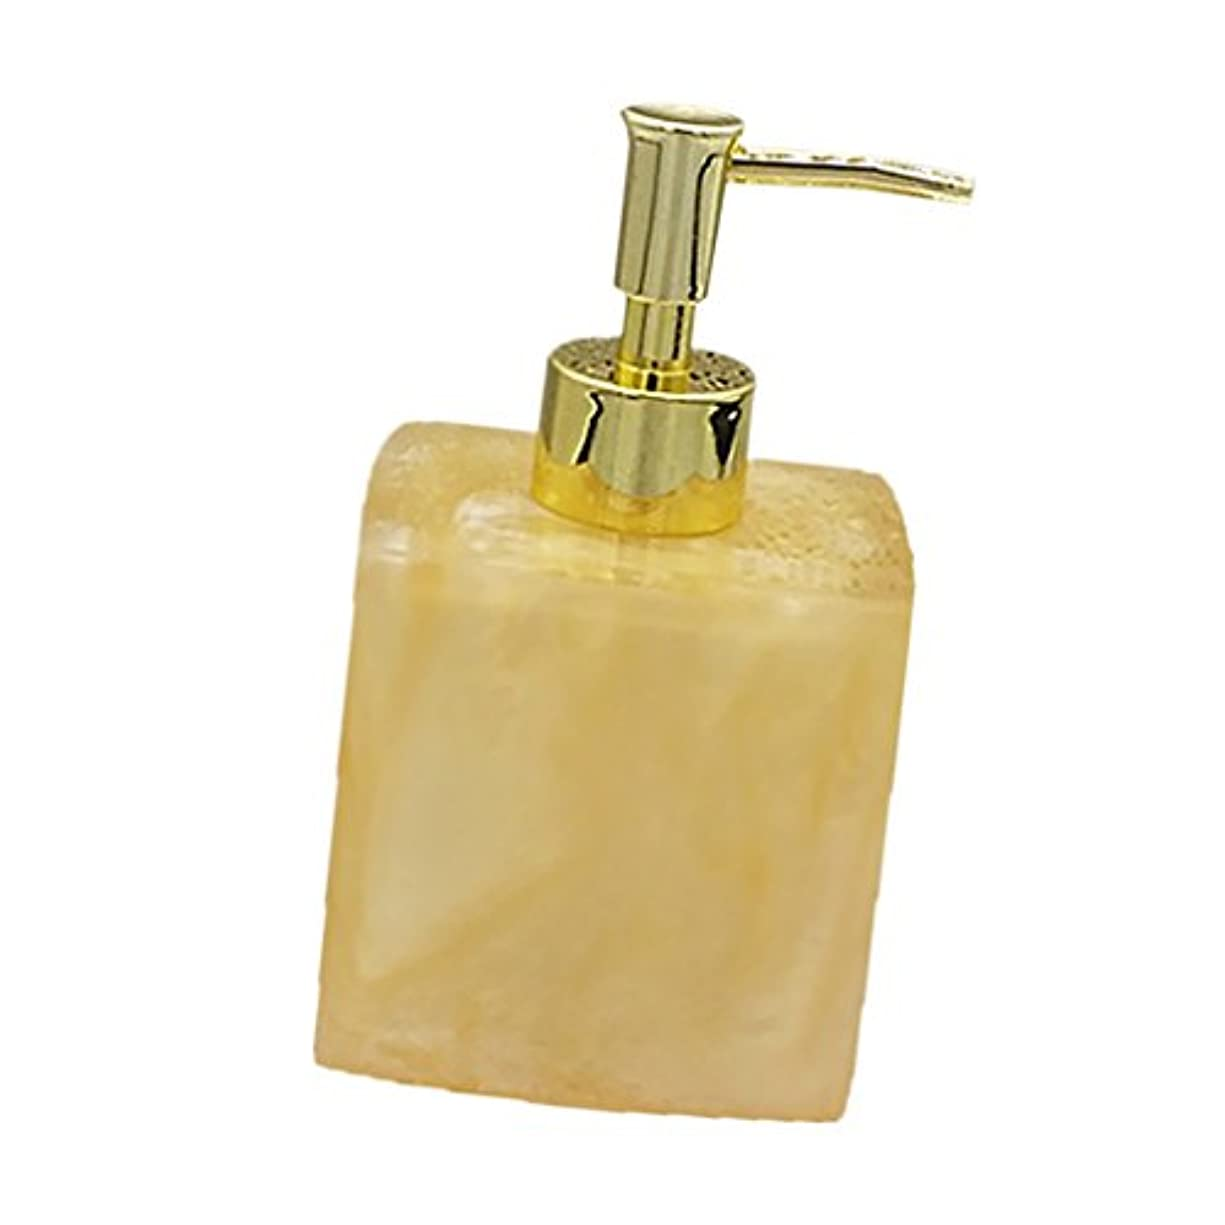 黒板好戦的な成人期(8.5 7.8 15cm, Yellow) - MonkeyJack Resin Soap Shampoo Dispenser Bath Liquid Body Lotion Pump Bottle/Jar VARIOUS...